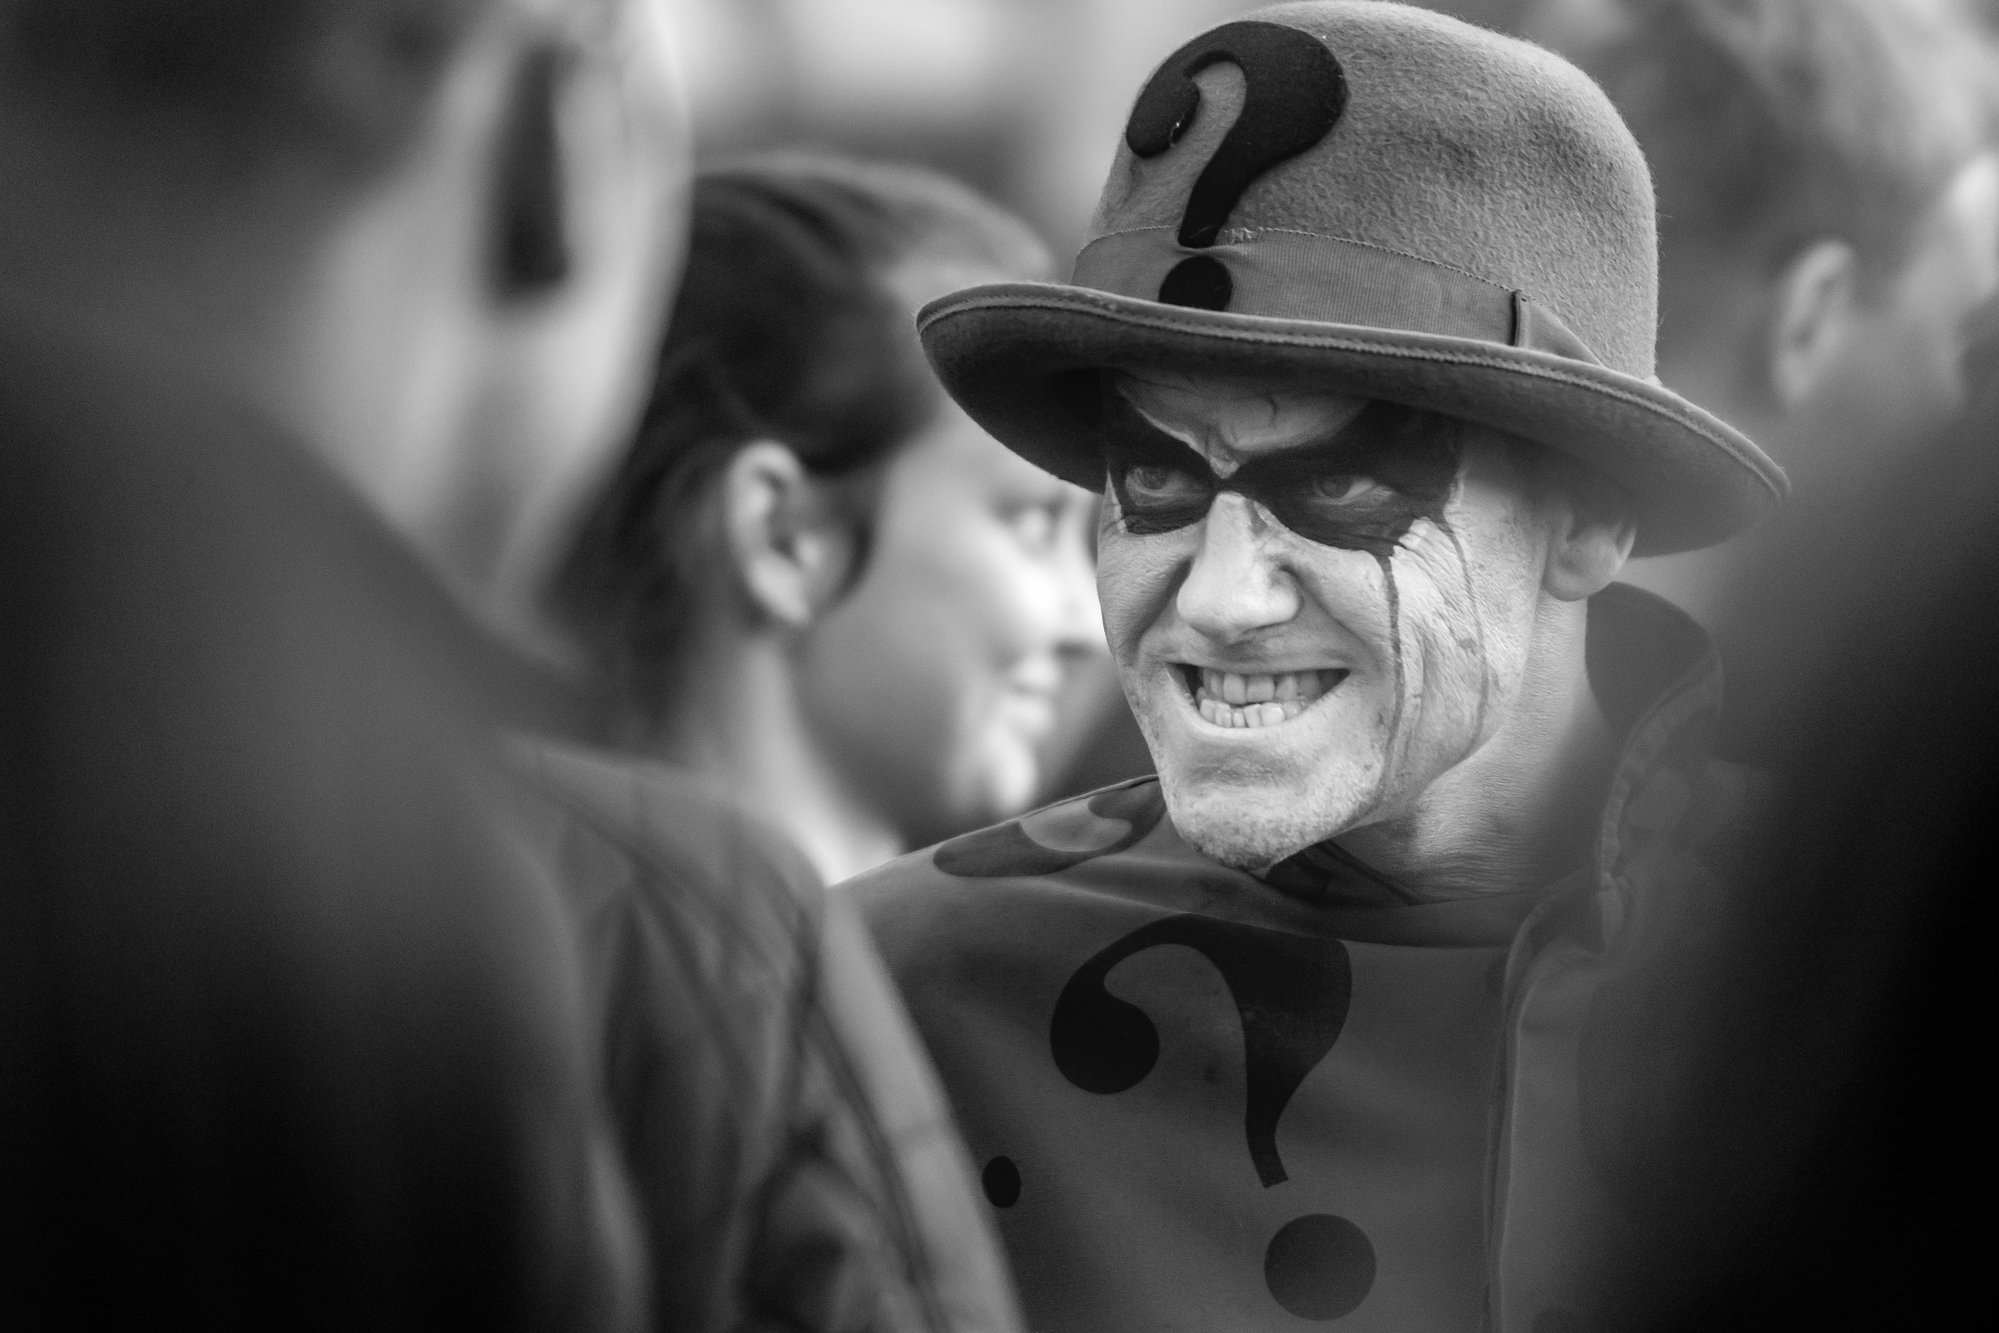 Infamous Riddler of DC Comics grins under bowler hat with large question mark in front.